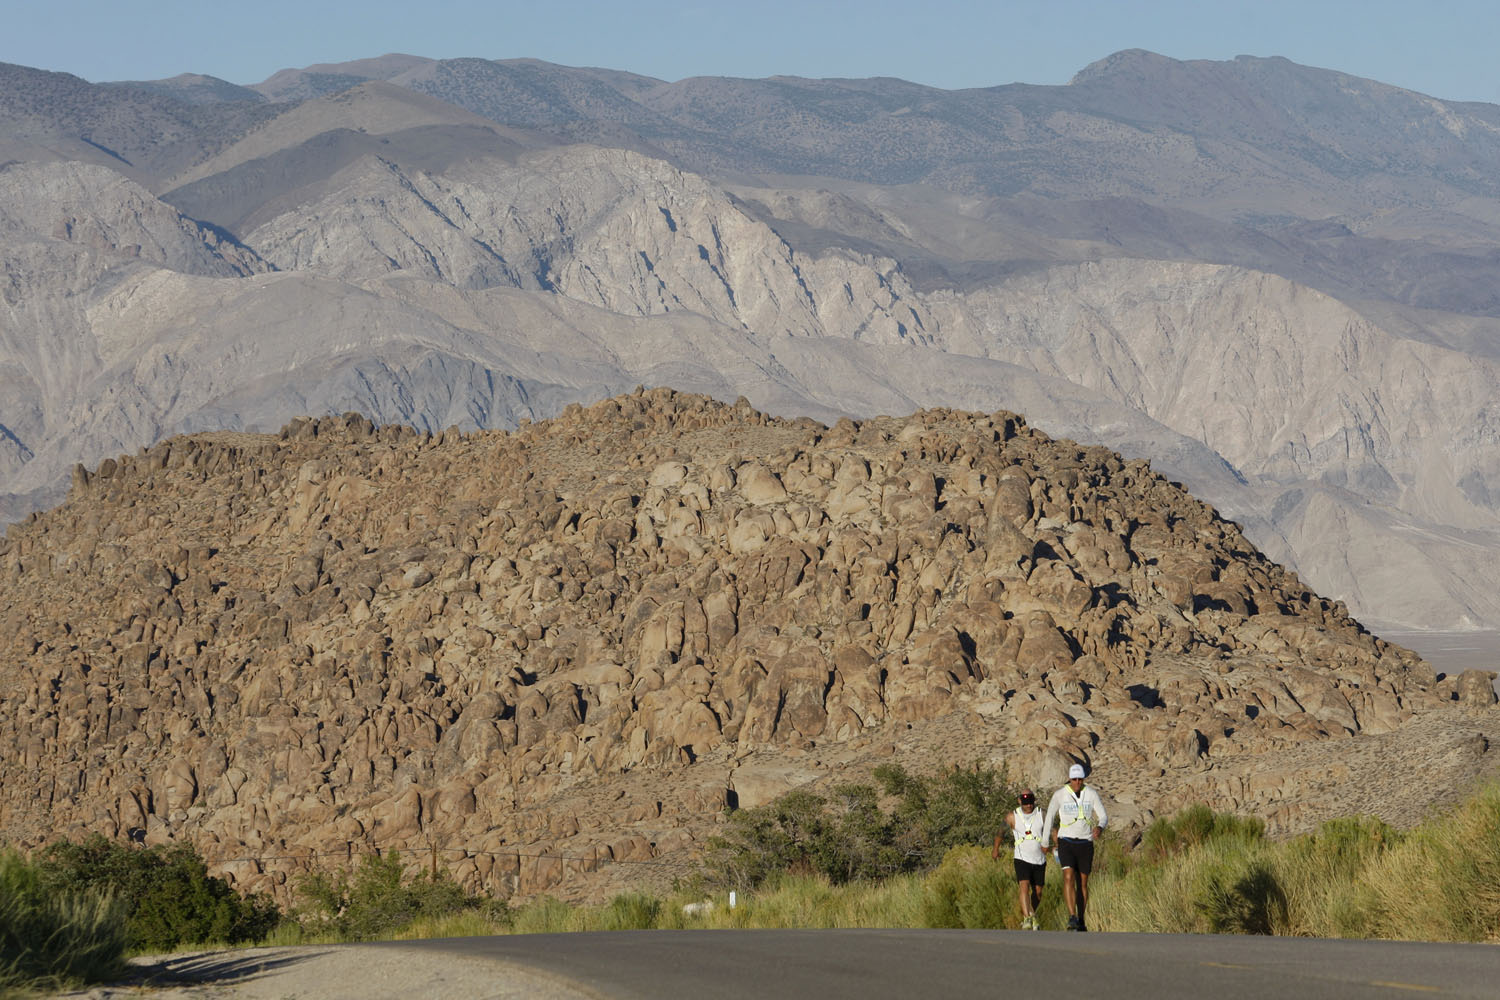 Lane Vogel ascends Whitney Portal Road through the Alabama Hills toward the finish of the AdventurCORPS Badwater 135 ultra-marathon race outside of Death Valley National Park, California.